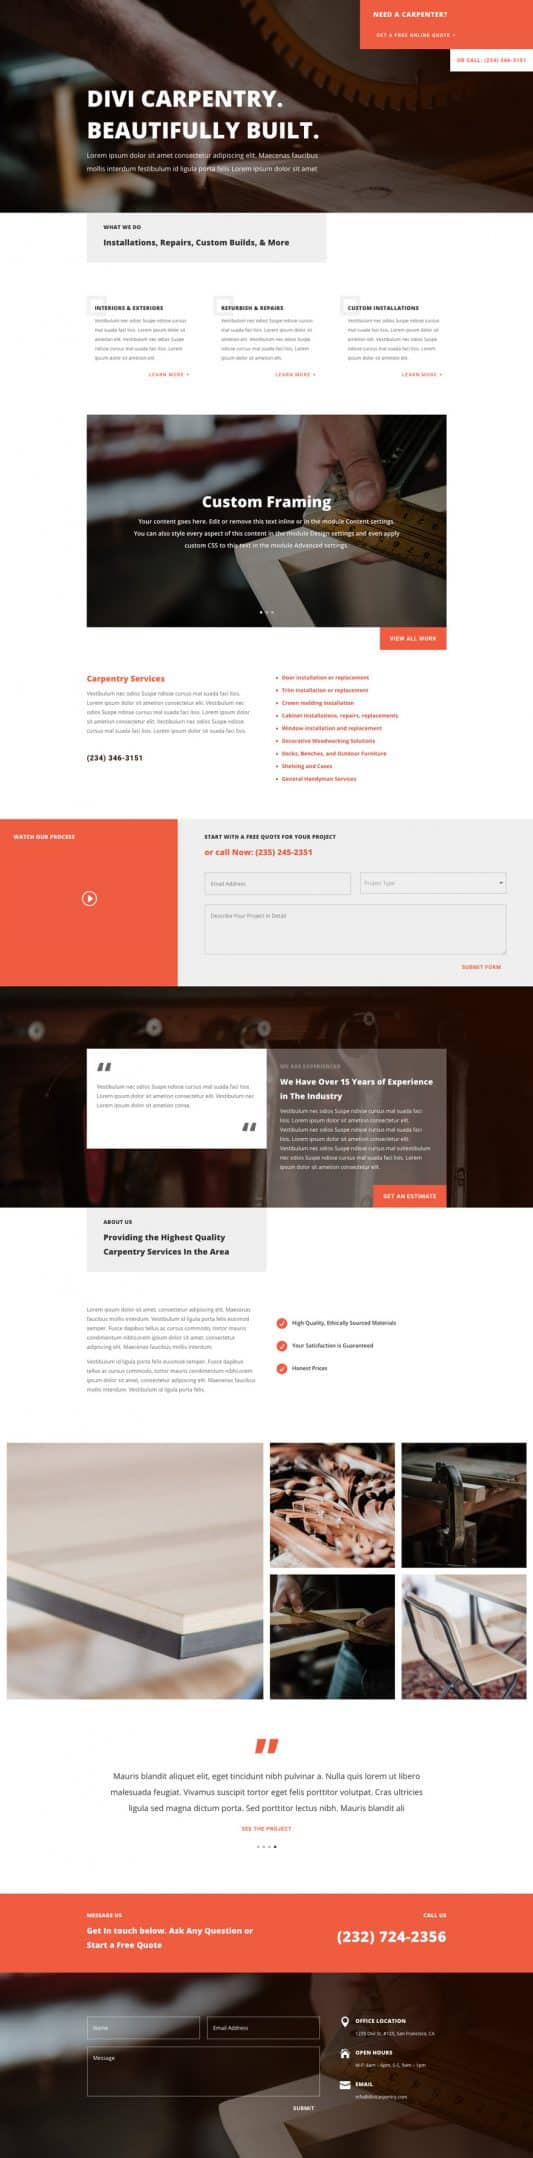 Carpenter Web Design 5